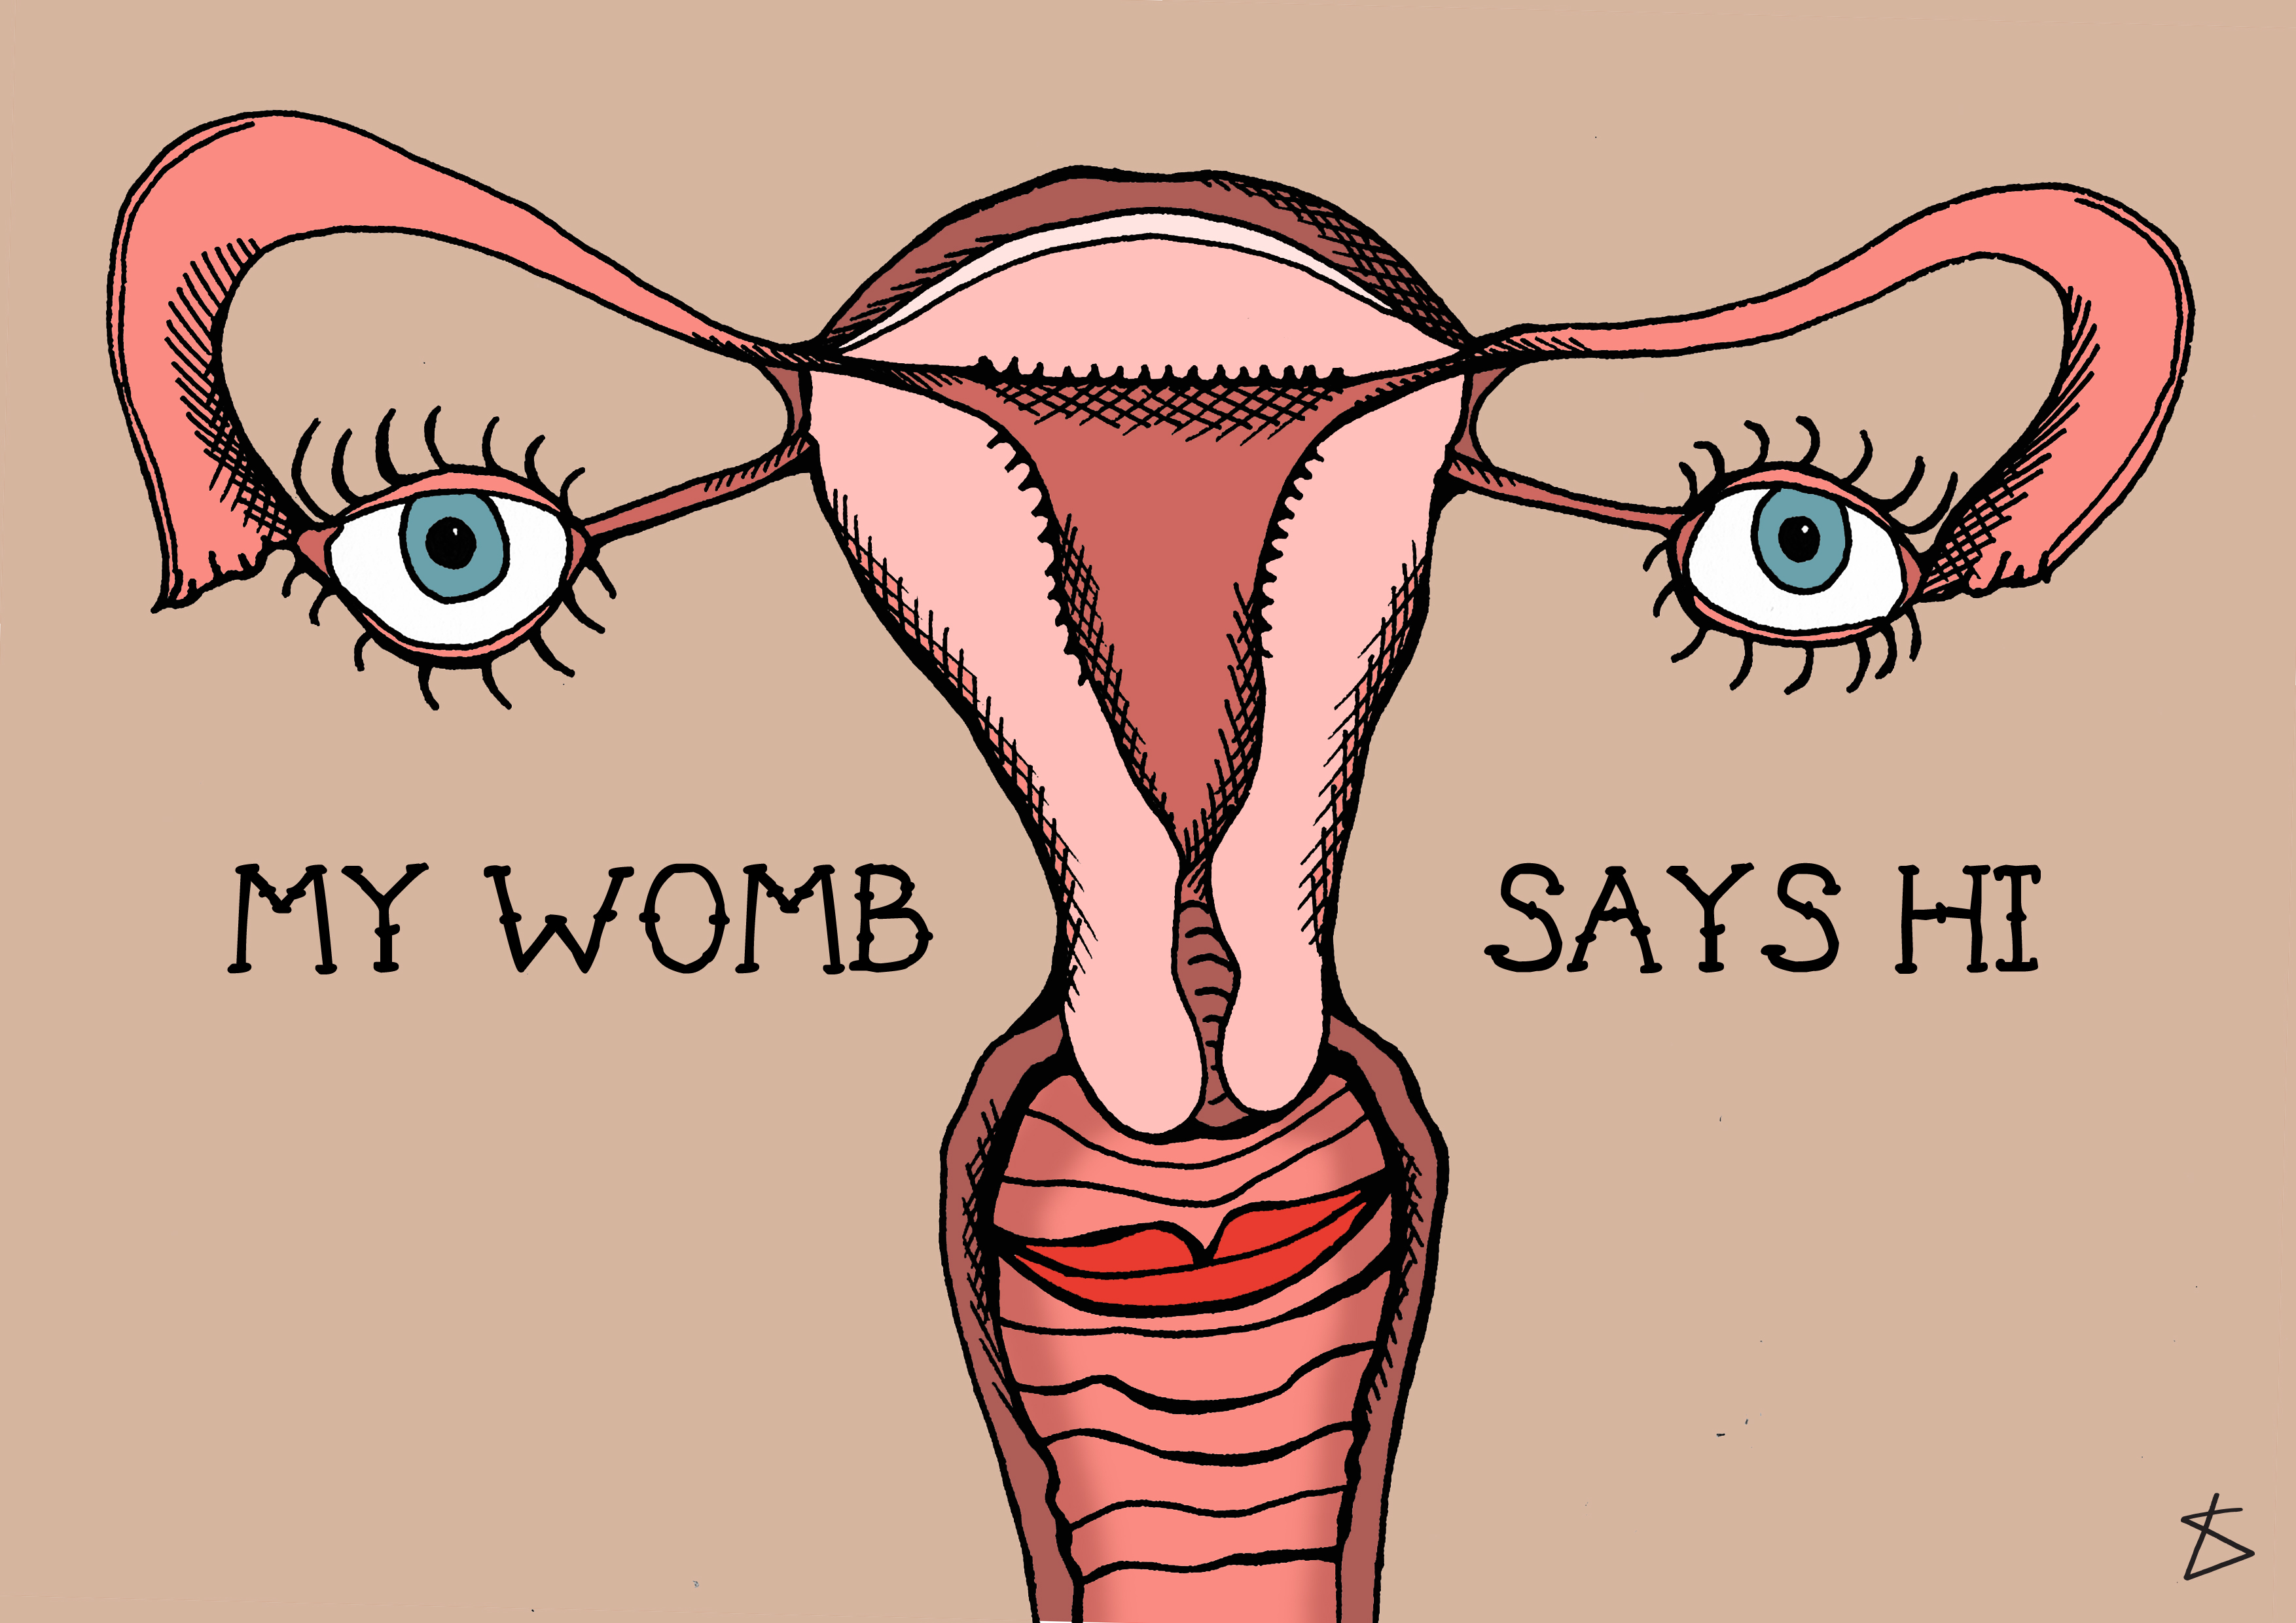 Illustration for period blog Piece by Yvette Caster - Title 'My Womb Says Hi' Credit: Illustration by Liberty Antonia Sadler